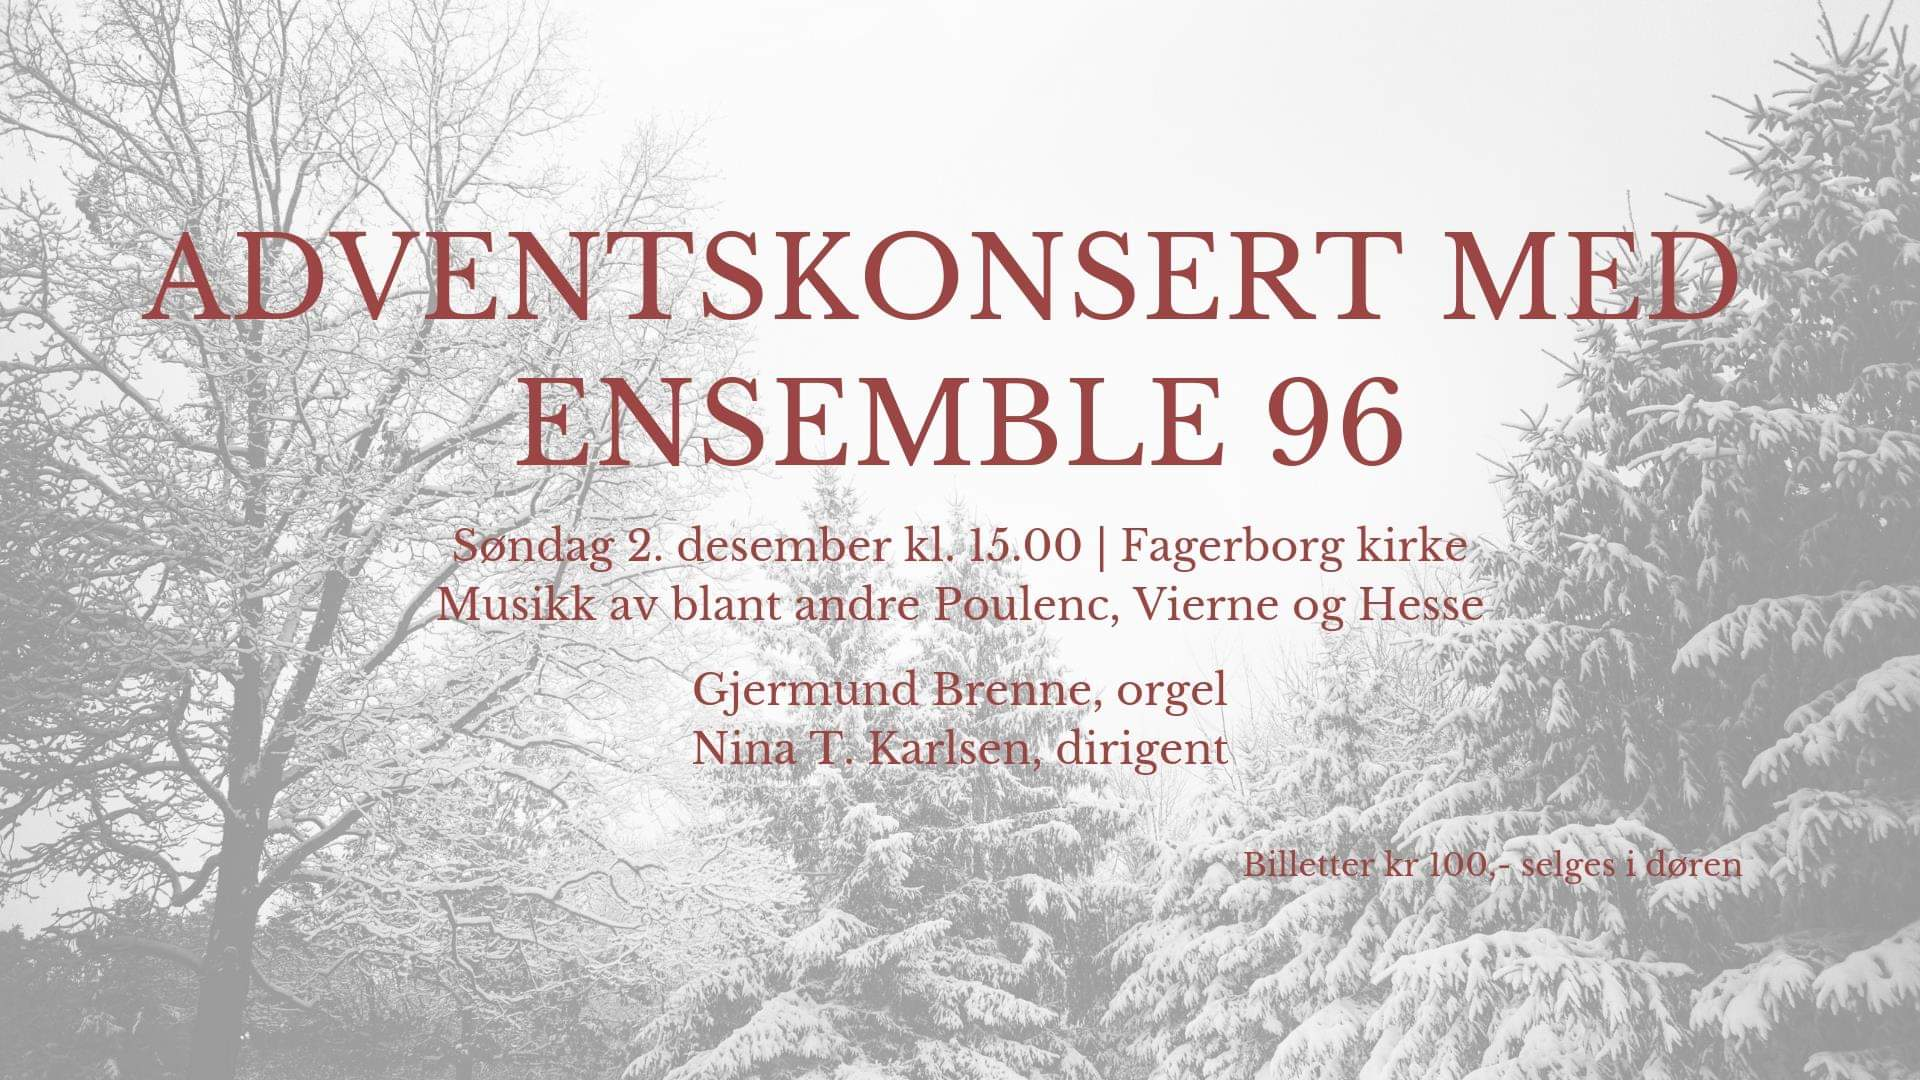 Adventskonsert med Ensemble 96